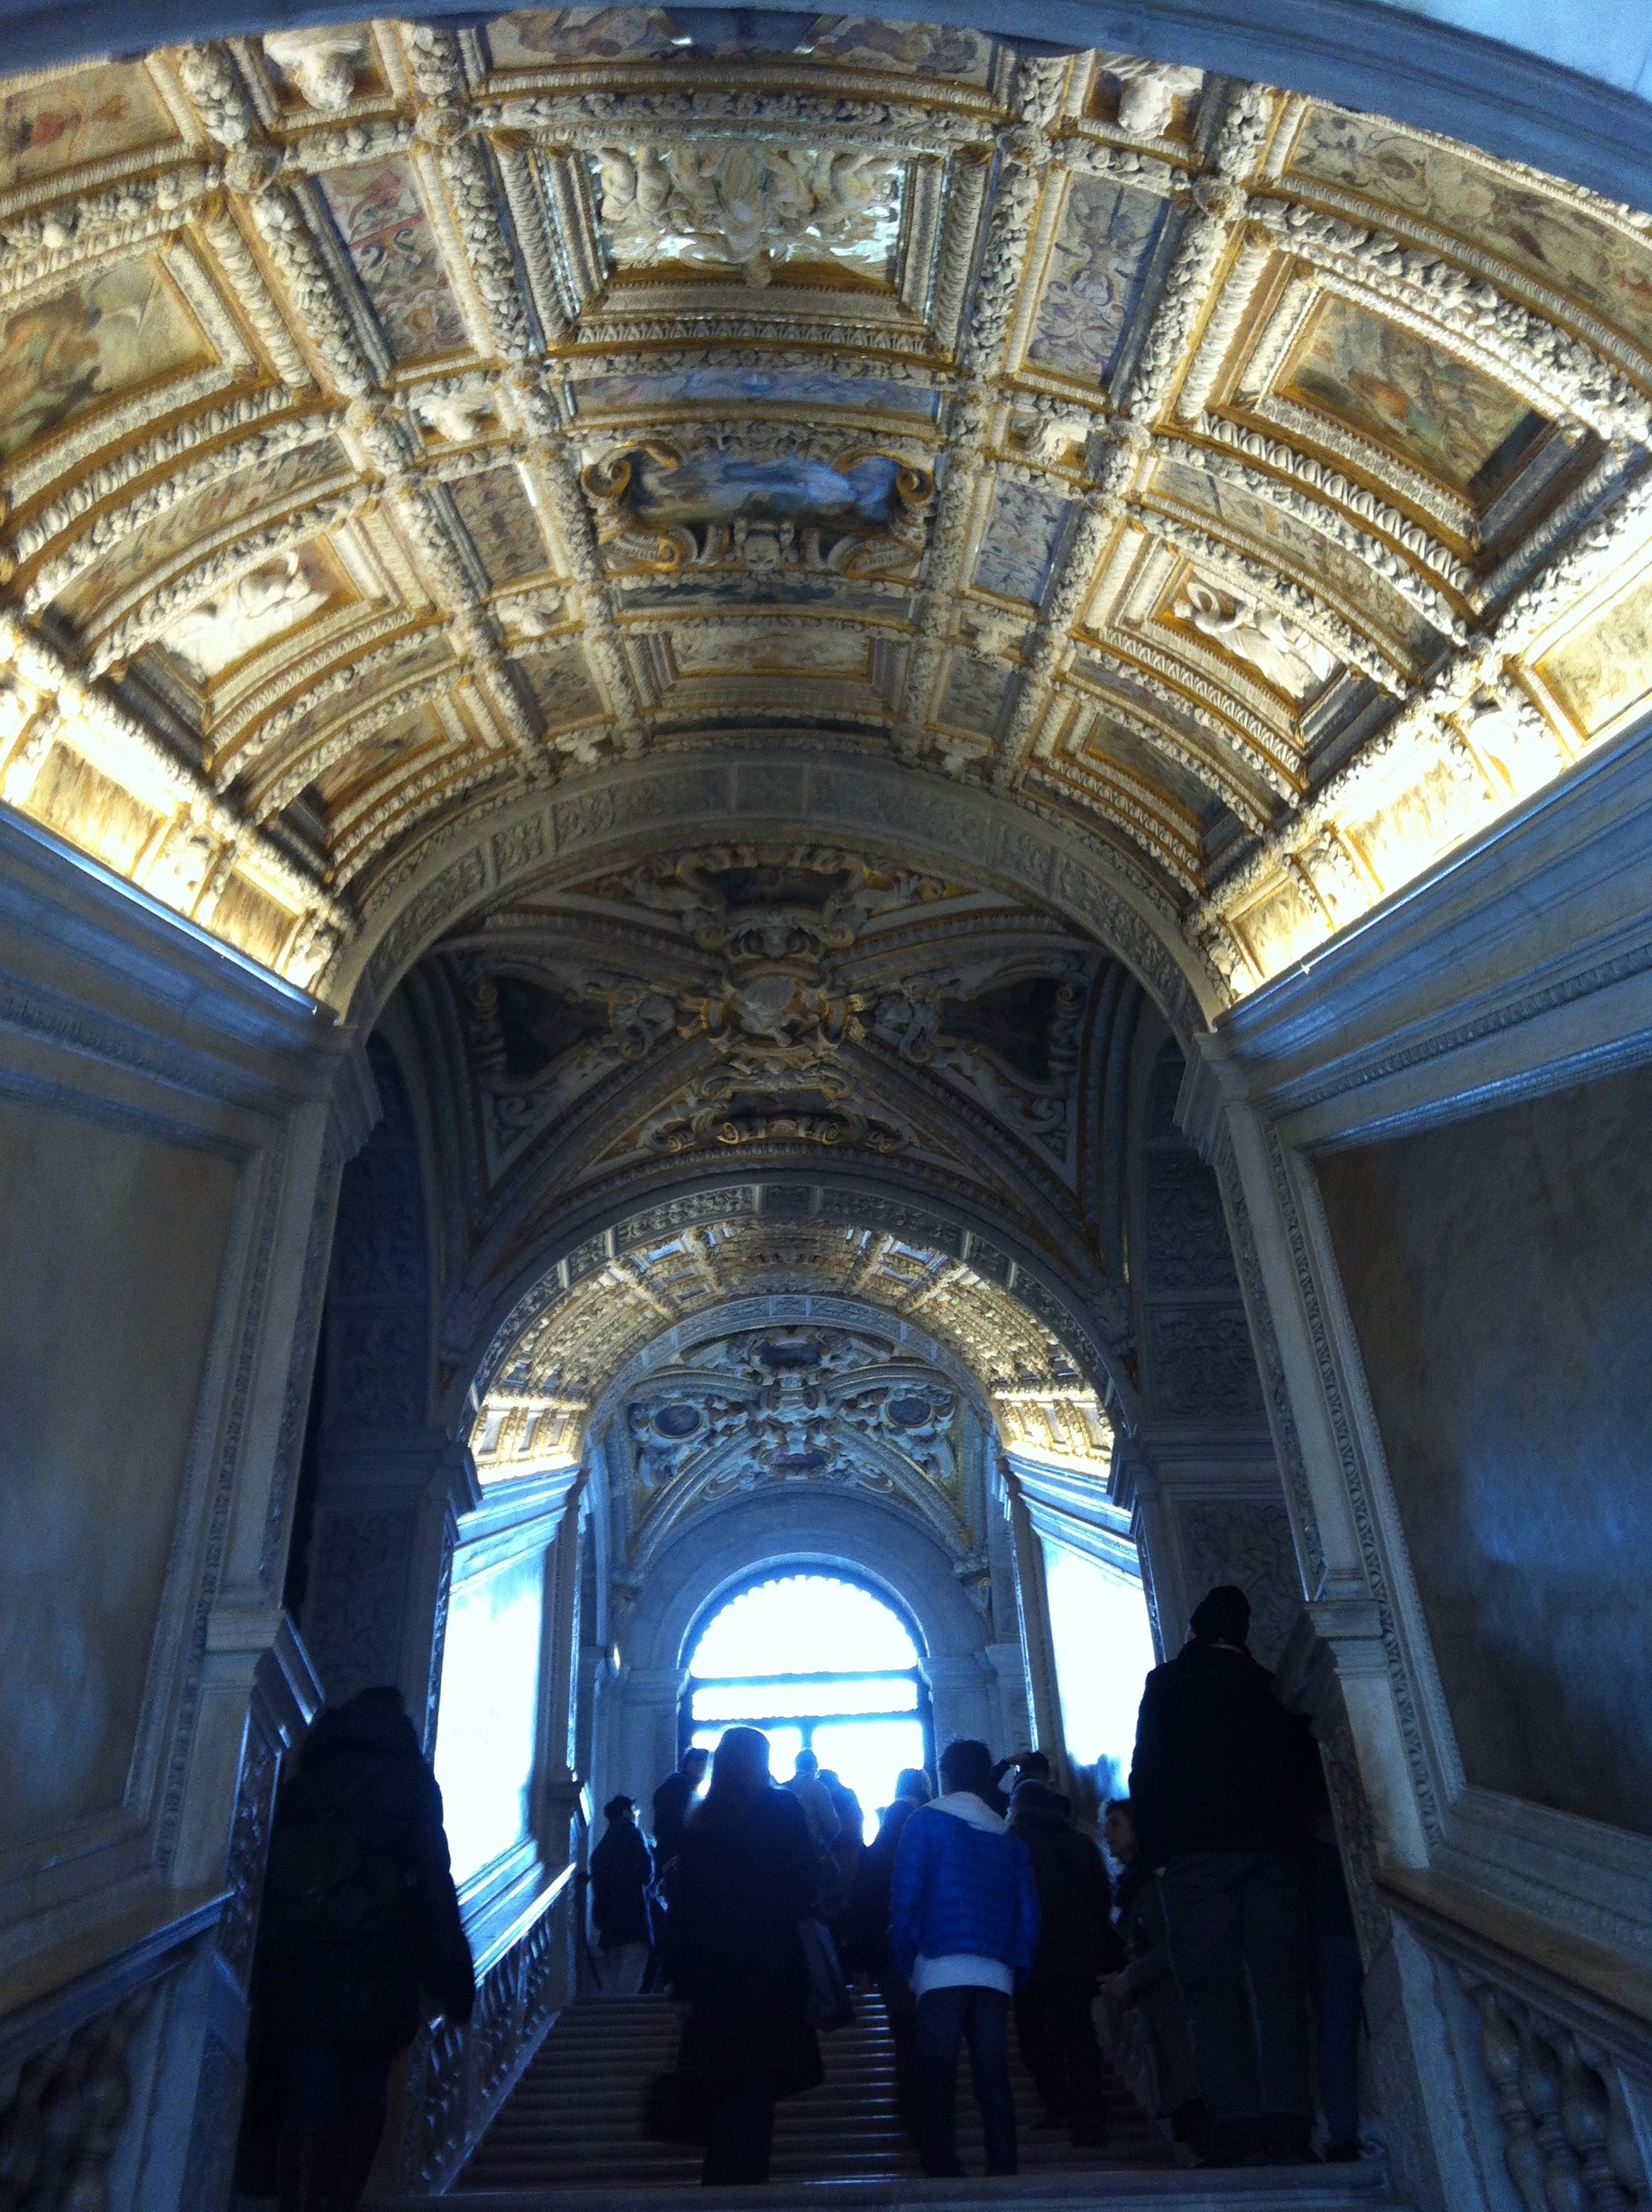 Golden Staircase in Doges Palace